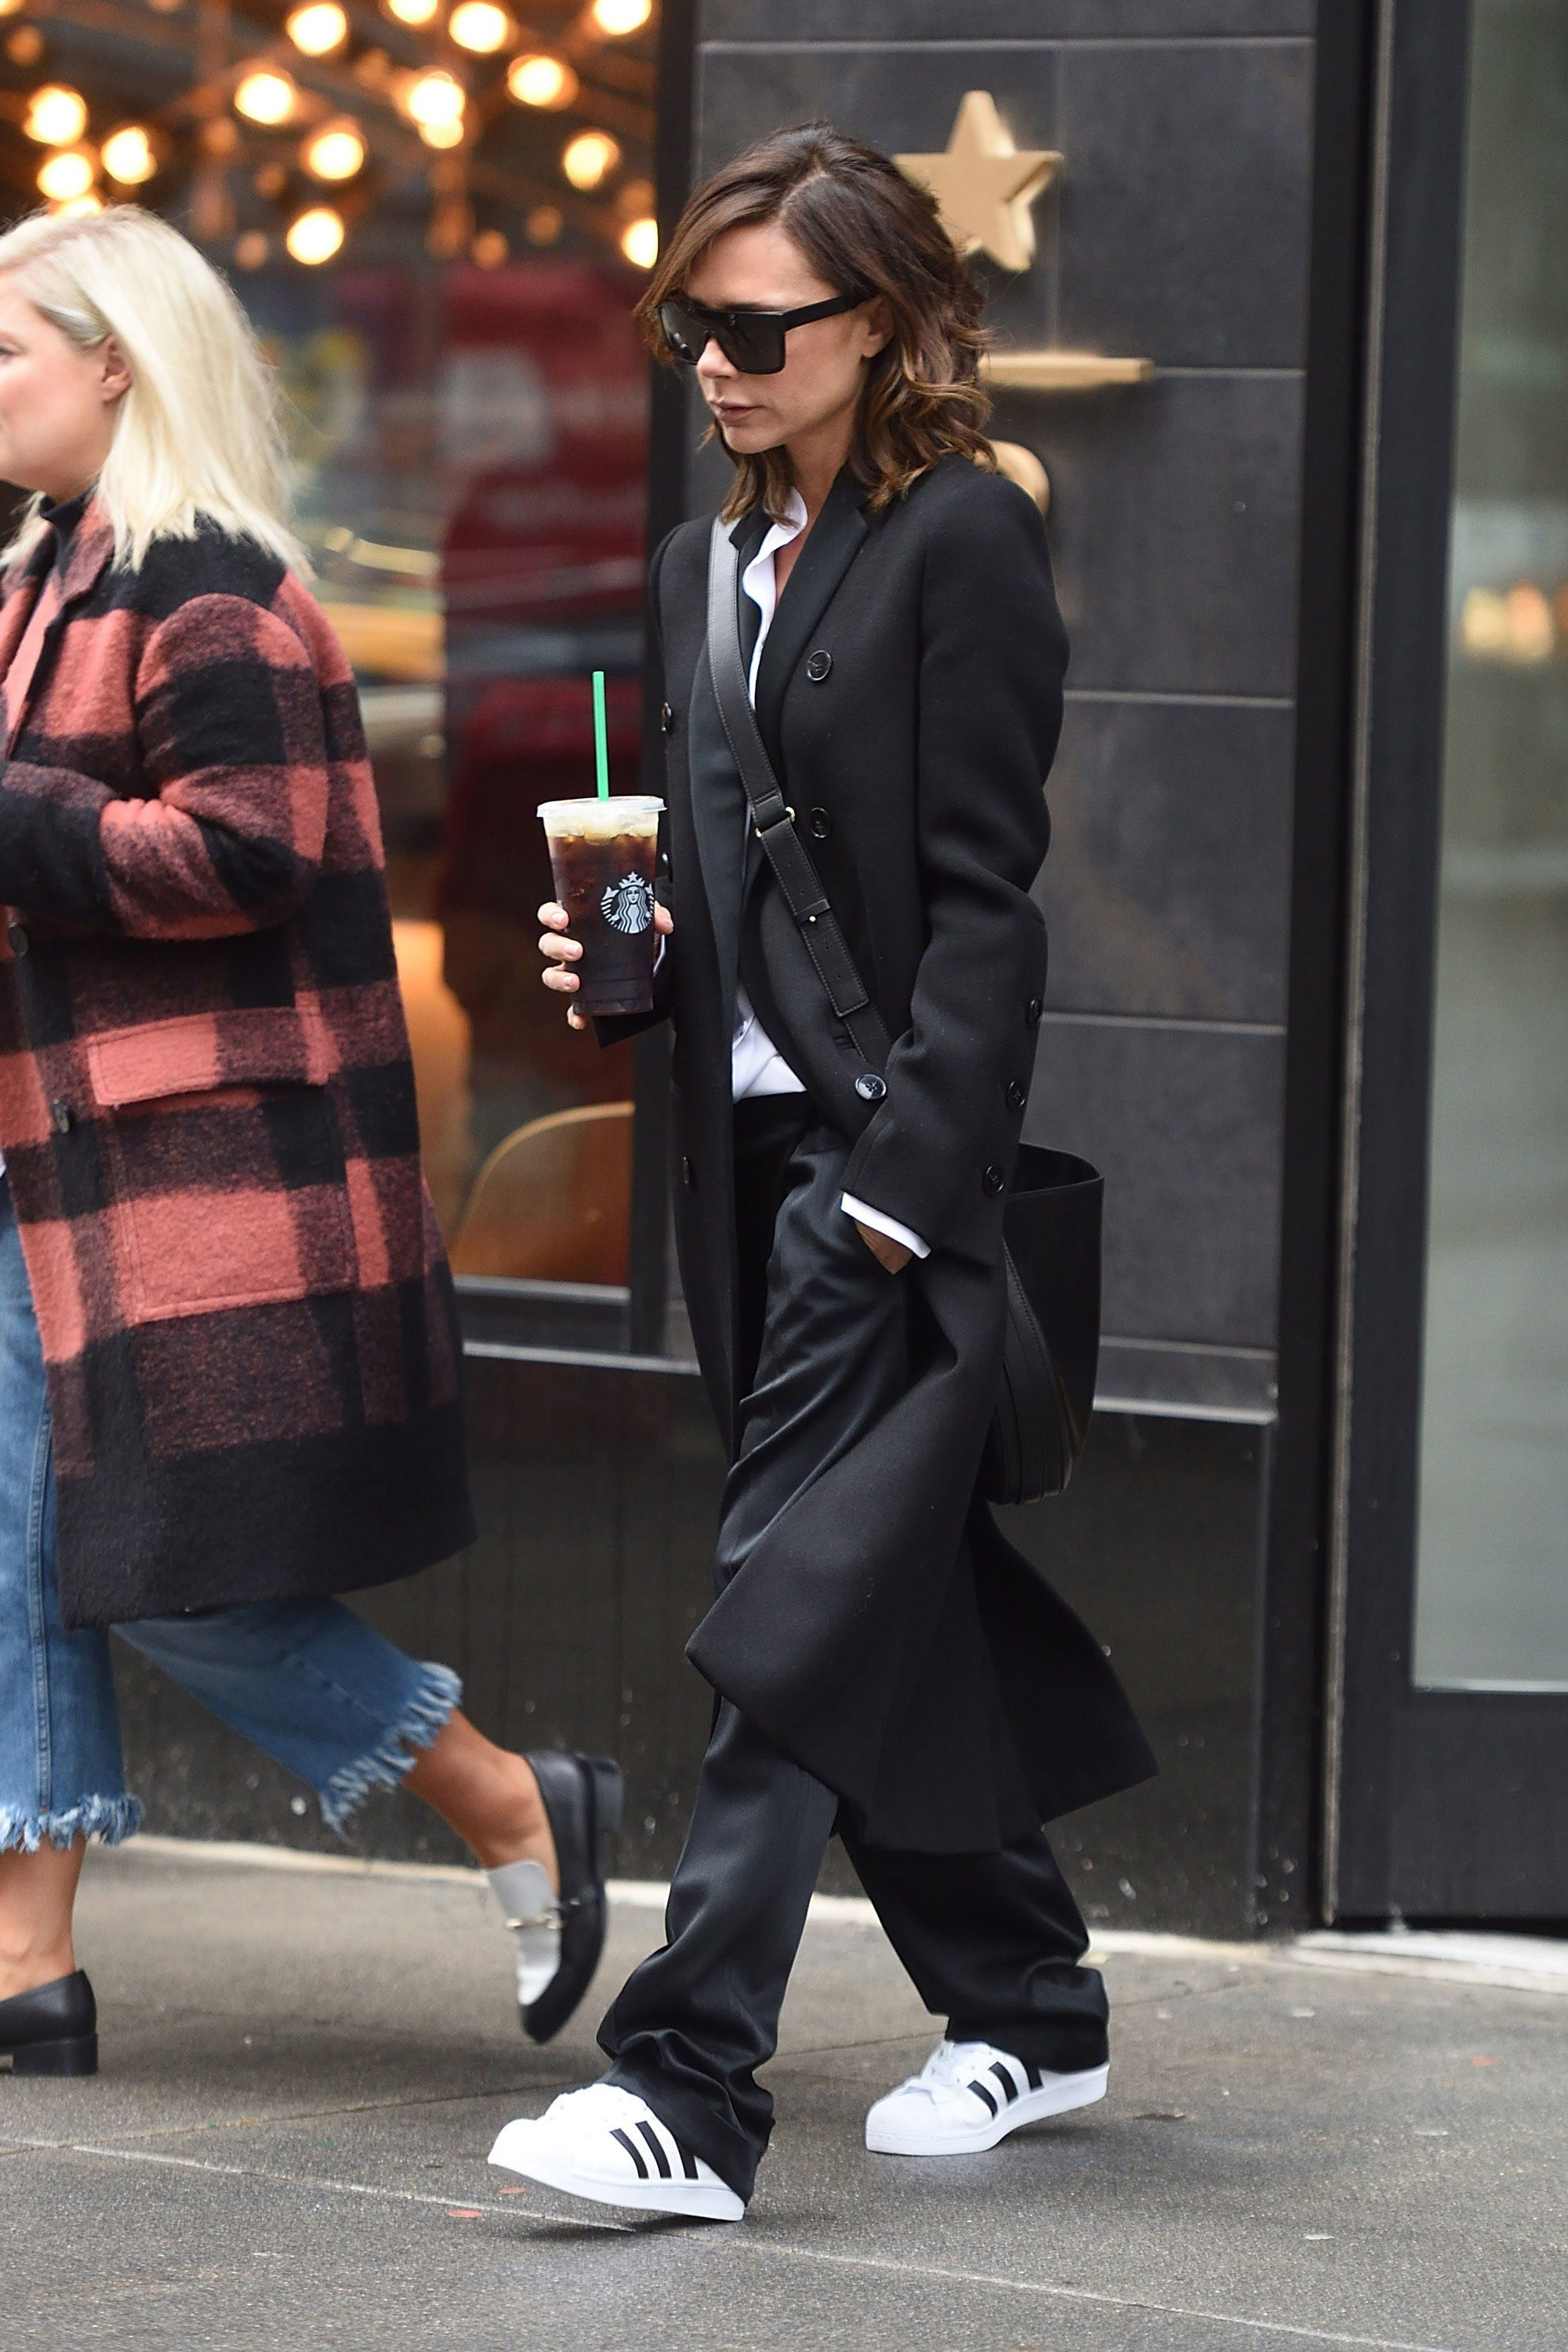 Victoria Beckham Steps Out in Her Coolest Look Yet